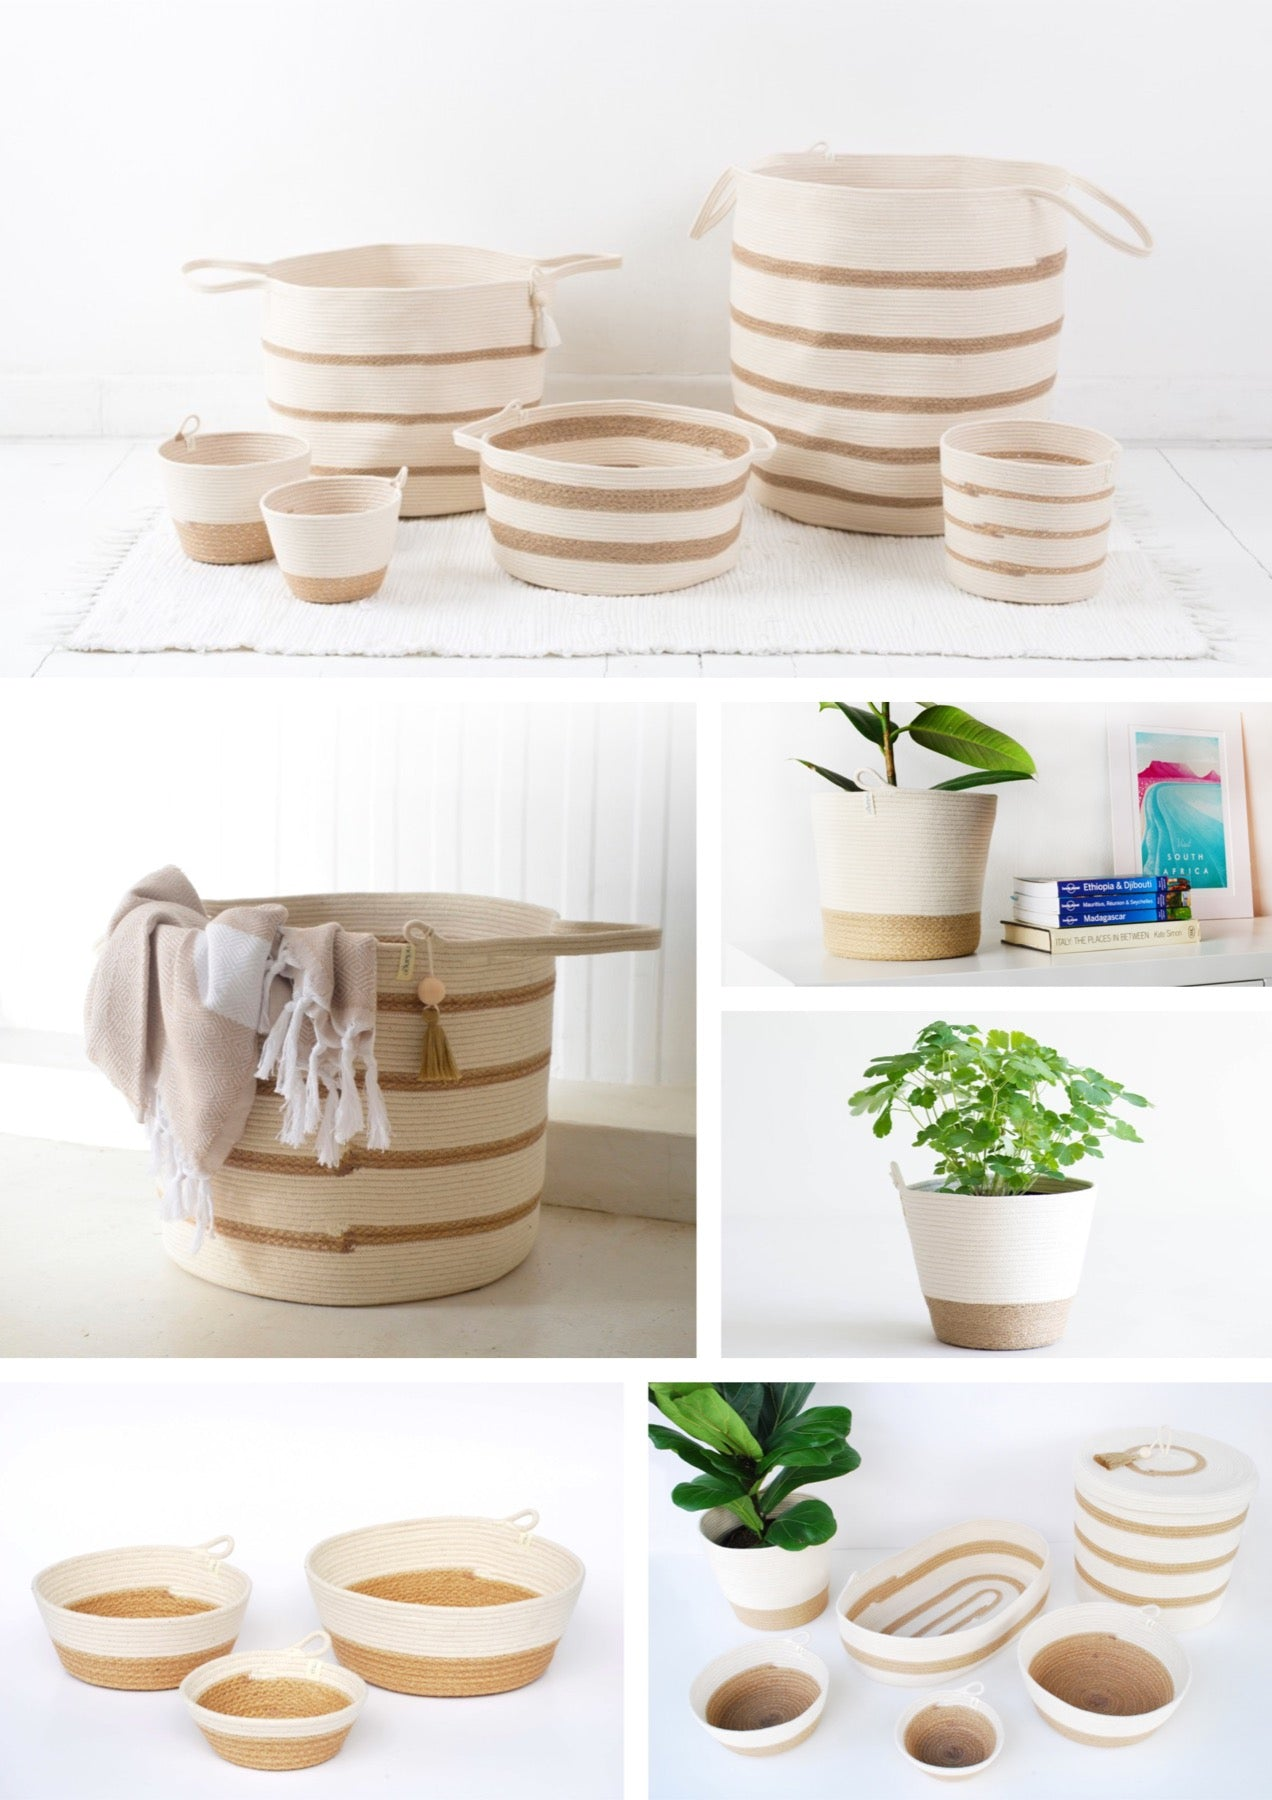 Jute and cotton rope baskets